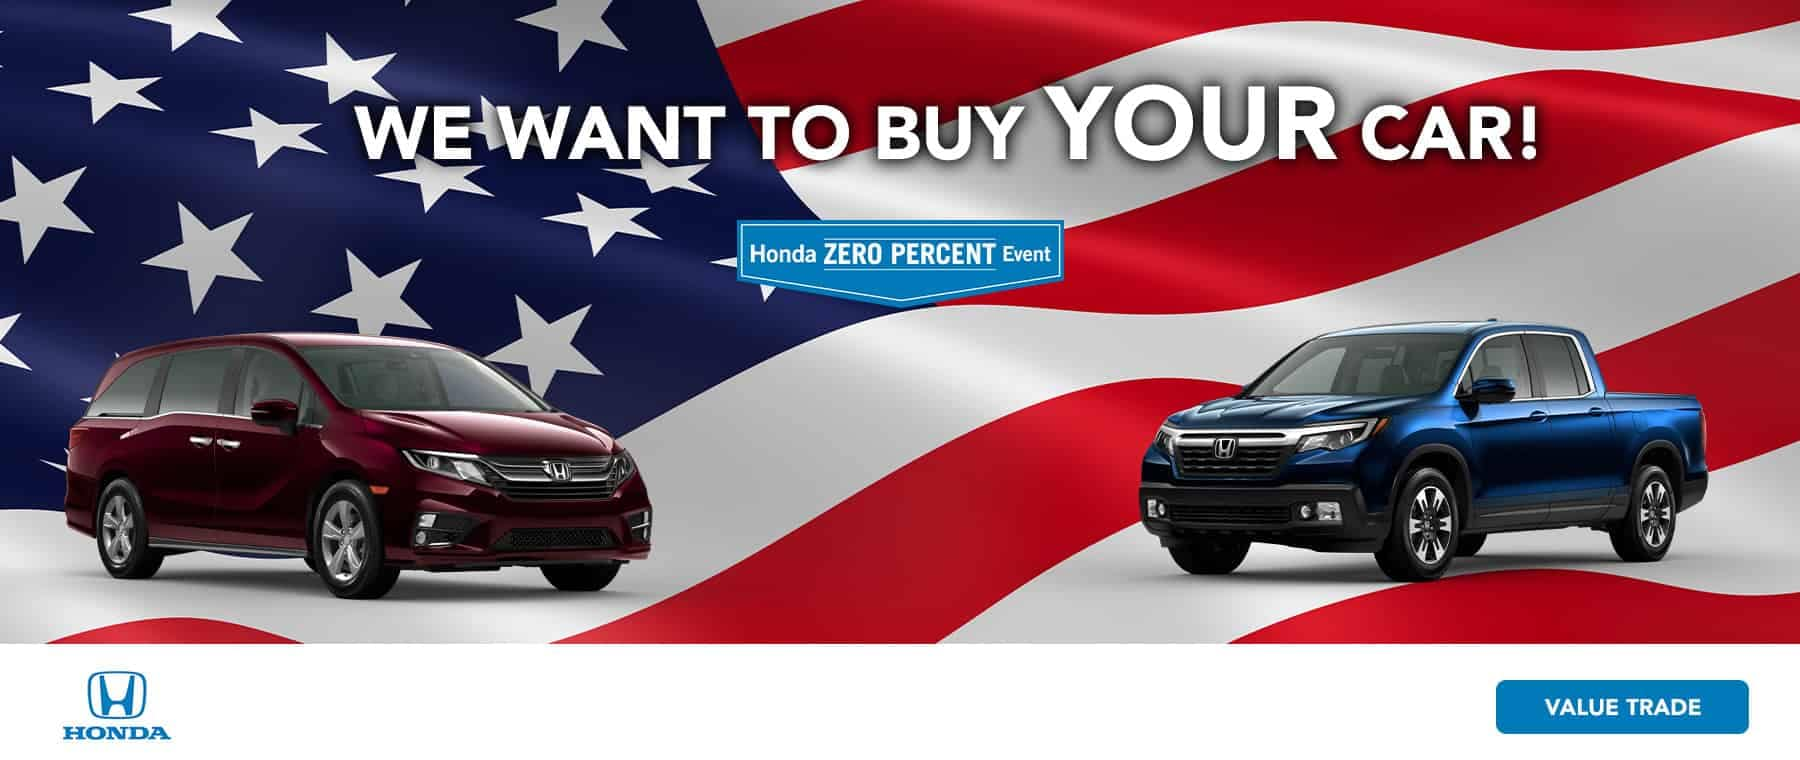 FINAL-we-want-to-buy-your-car 2